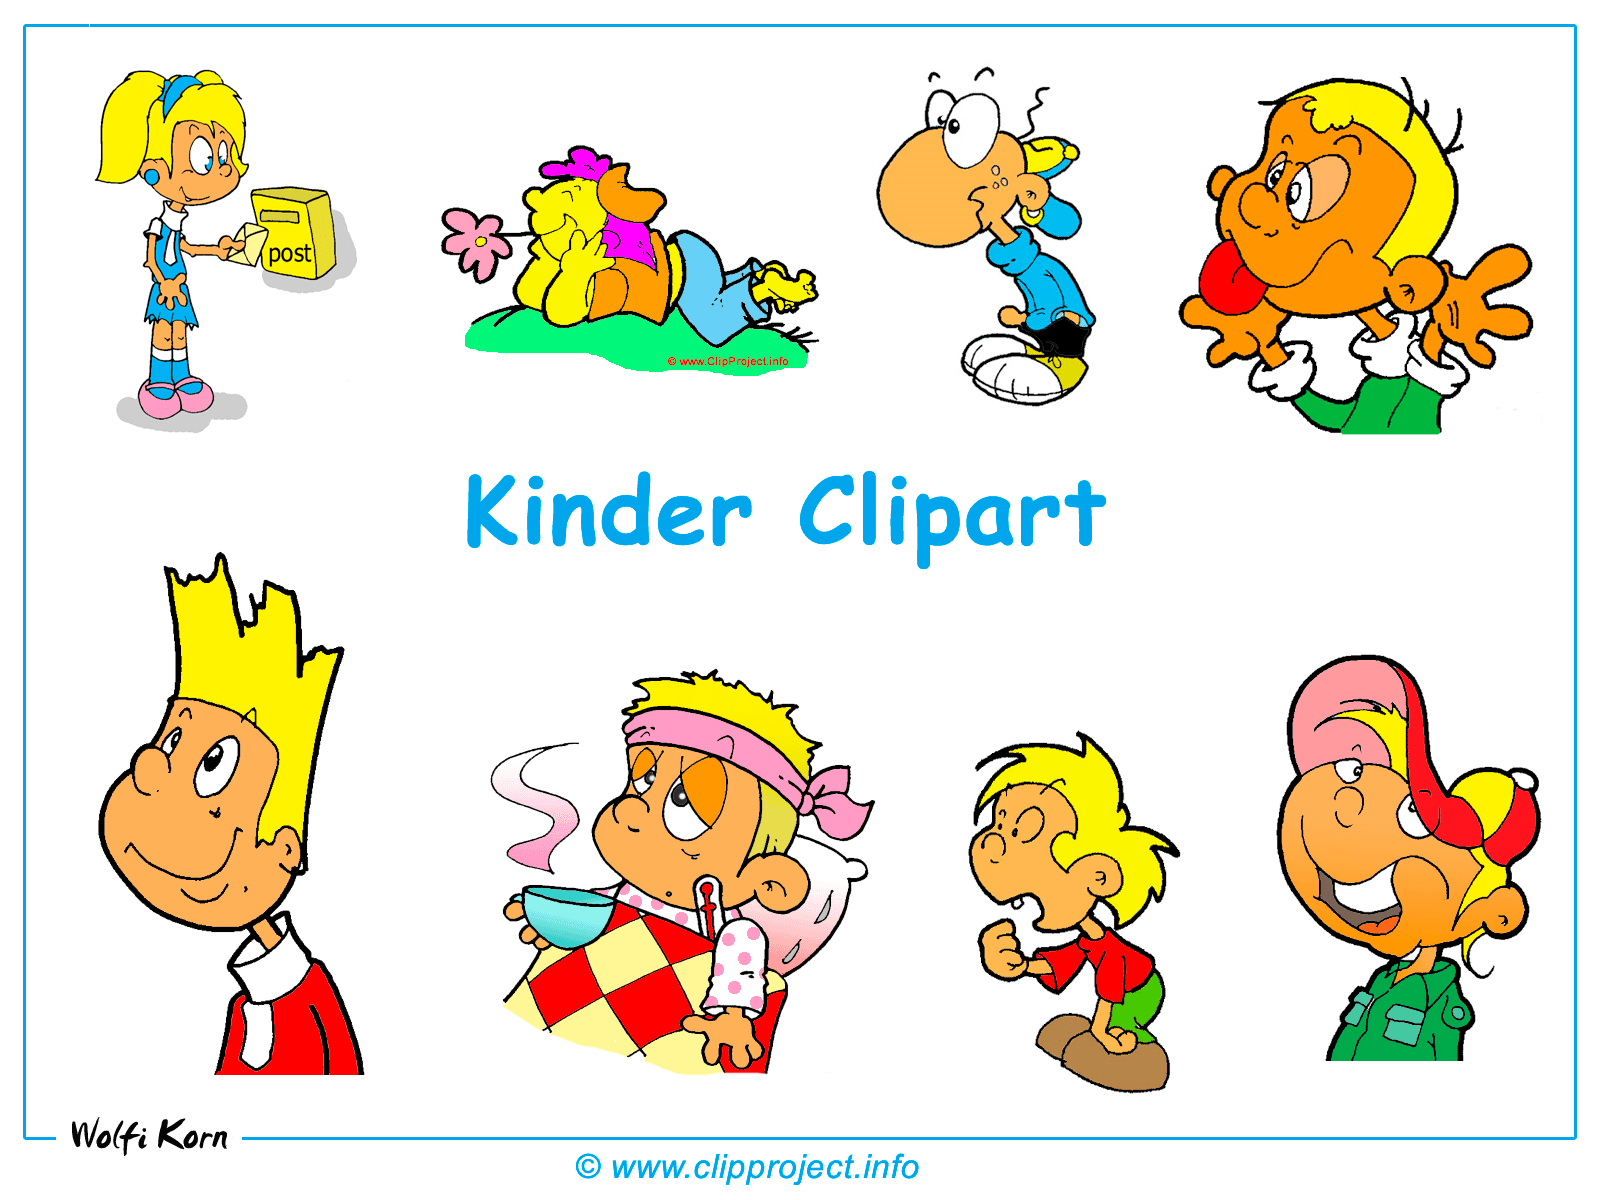 Cliparts Küche Essen Essen Kindergarten Clipart 20 Free Cliparts Download Images On